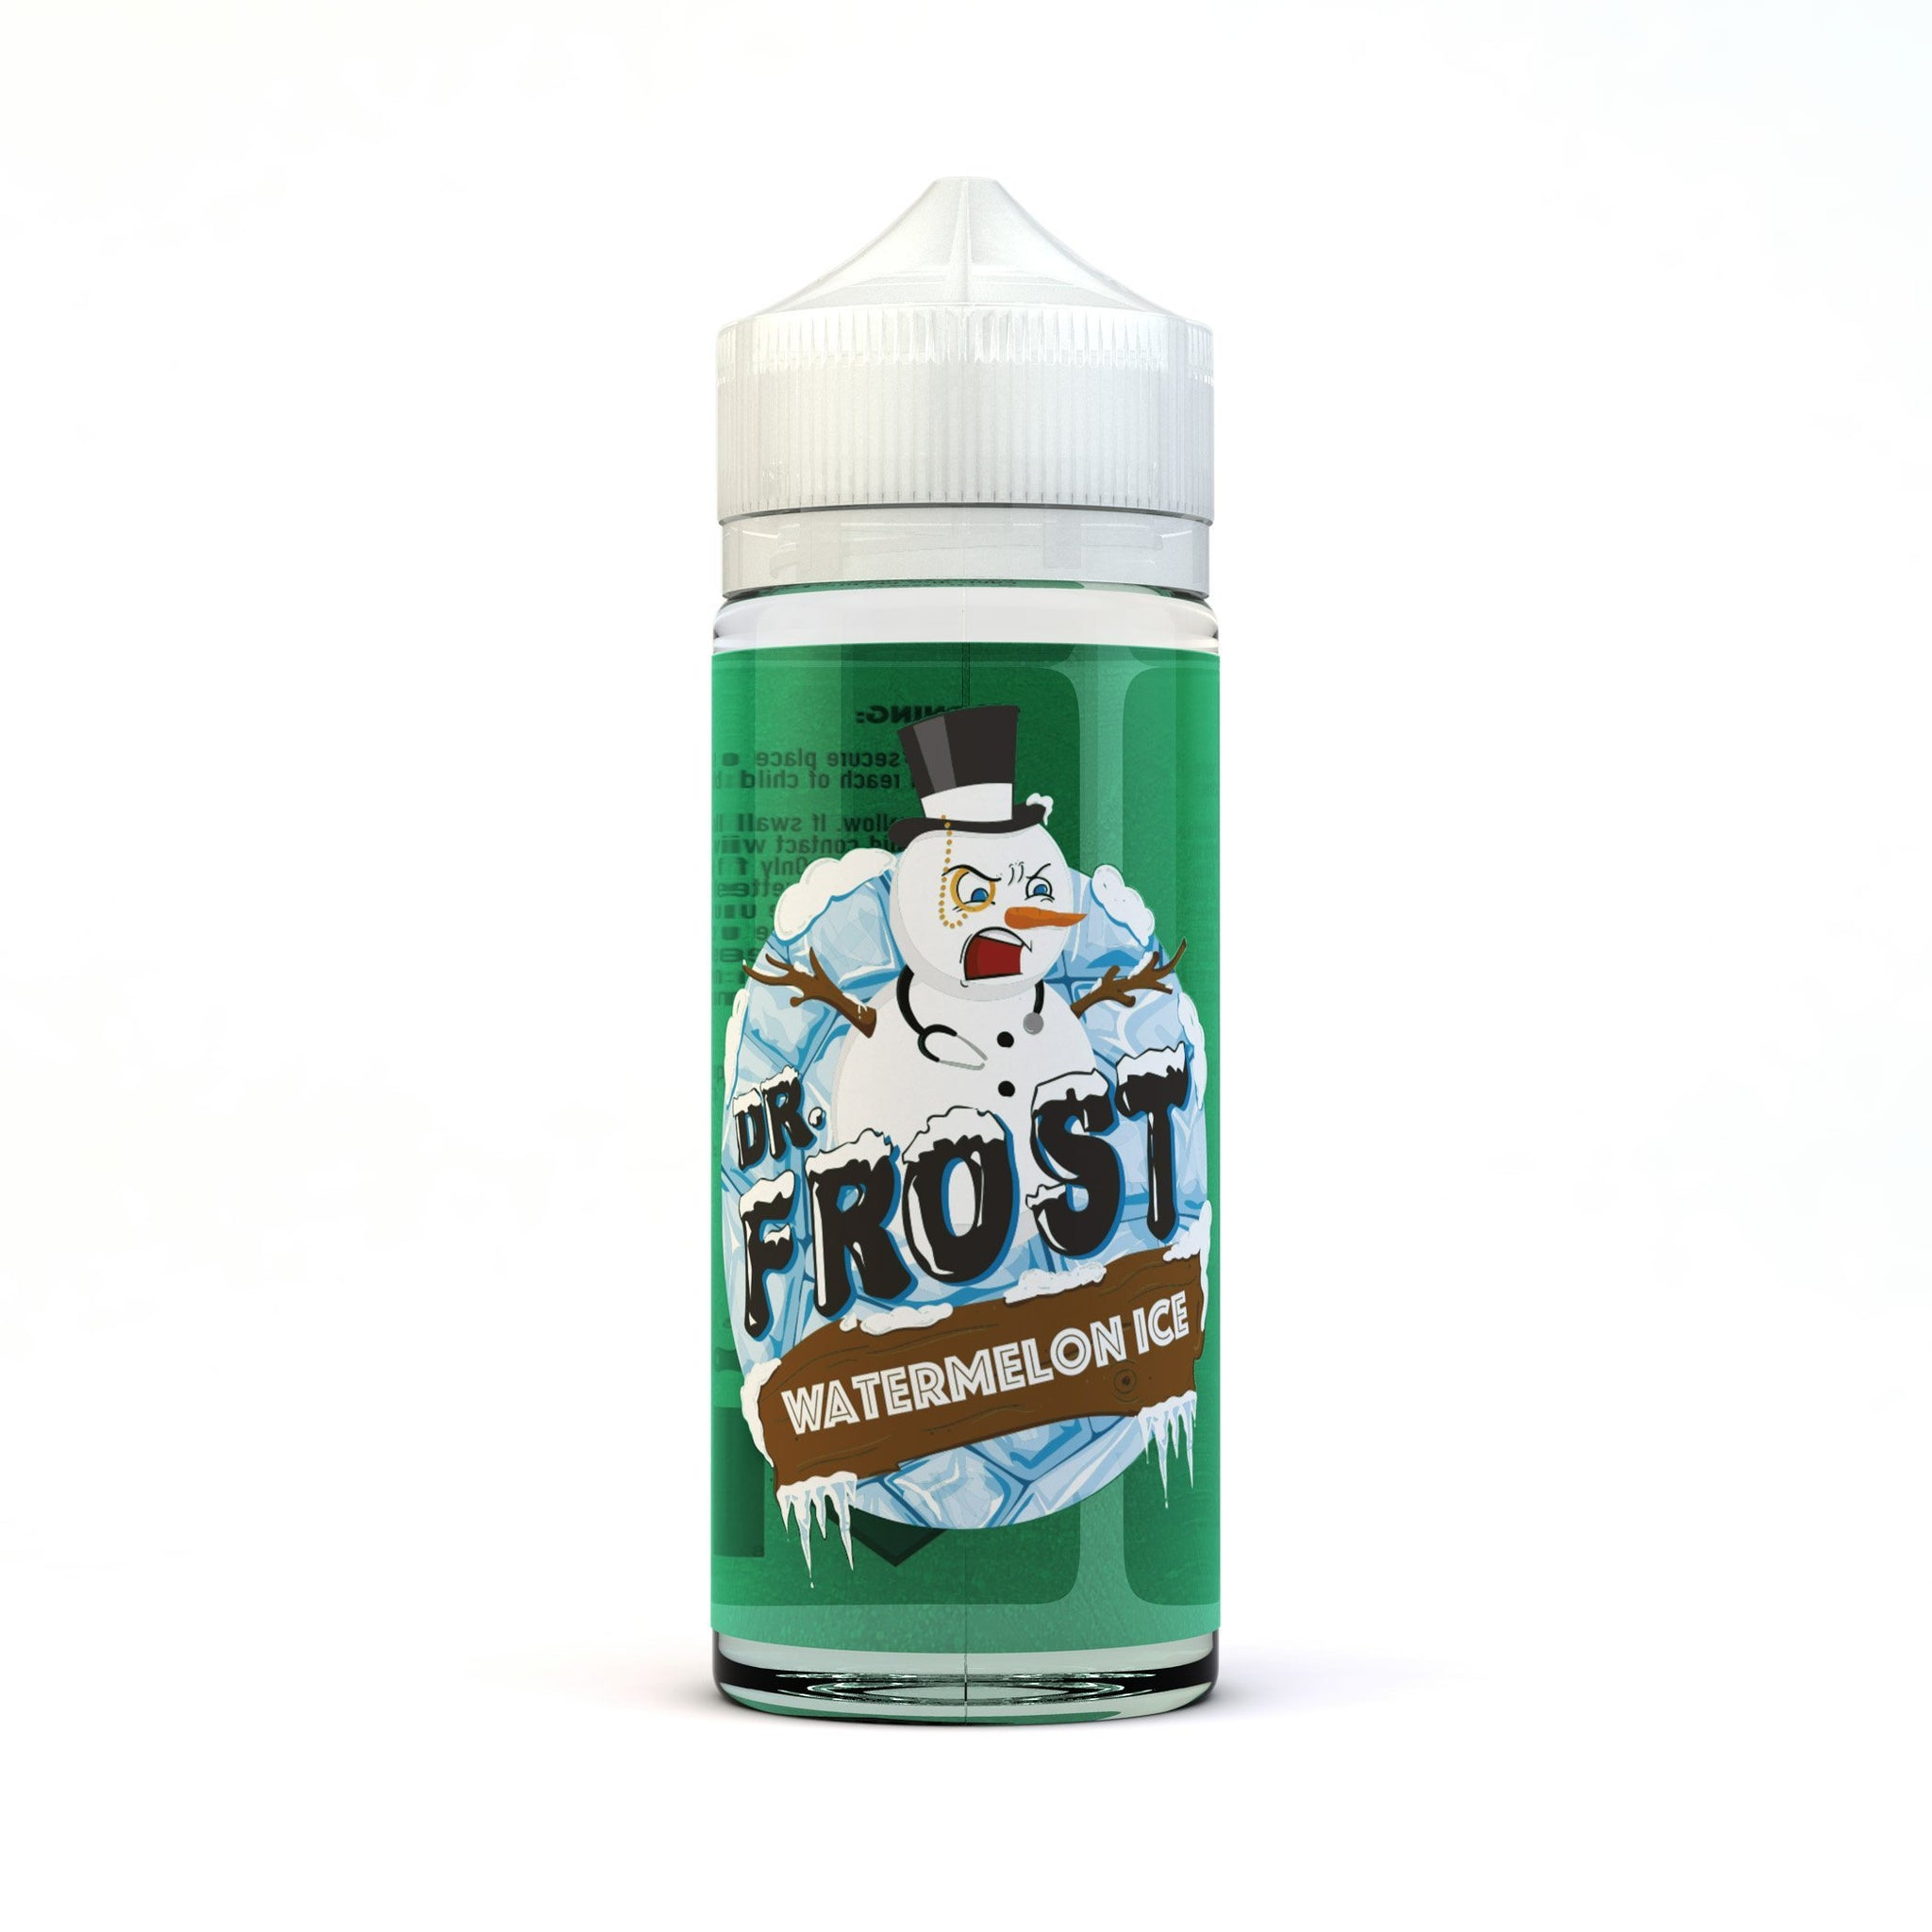 Dr Frost 60ml | Watermelon ice